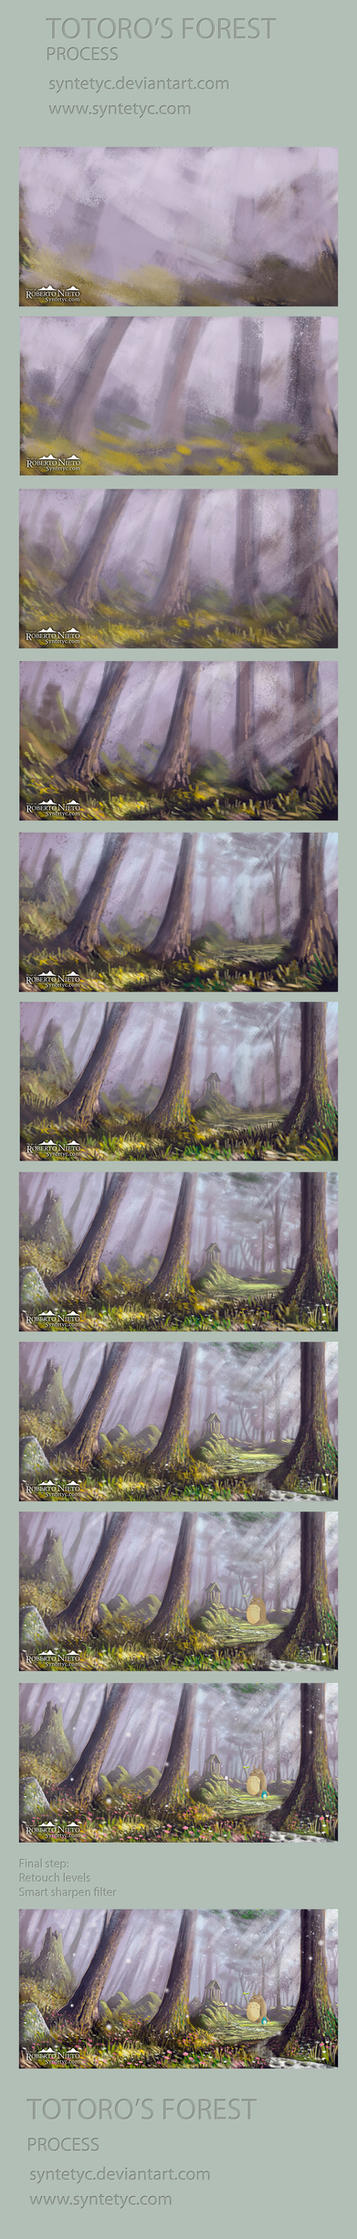 Totoro's Forest - Process by Syntetyc